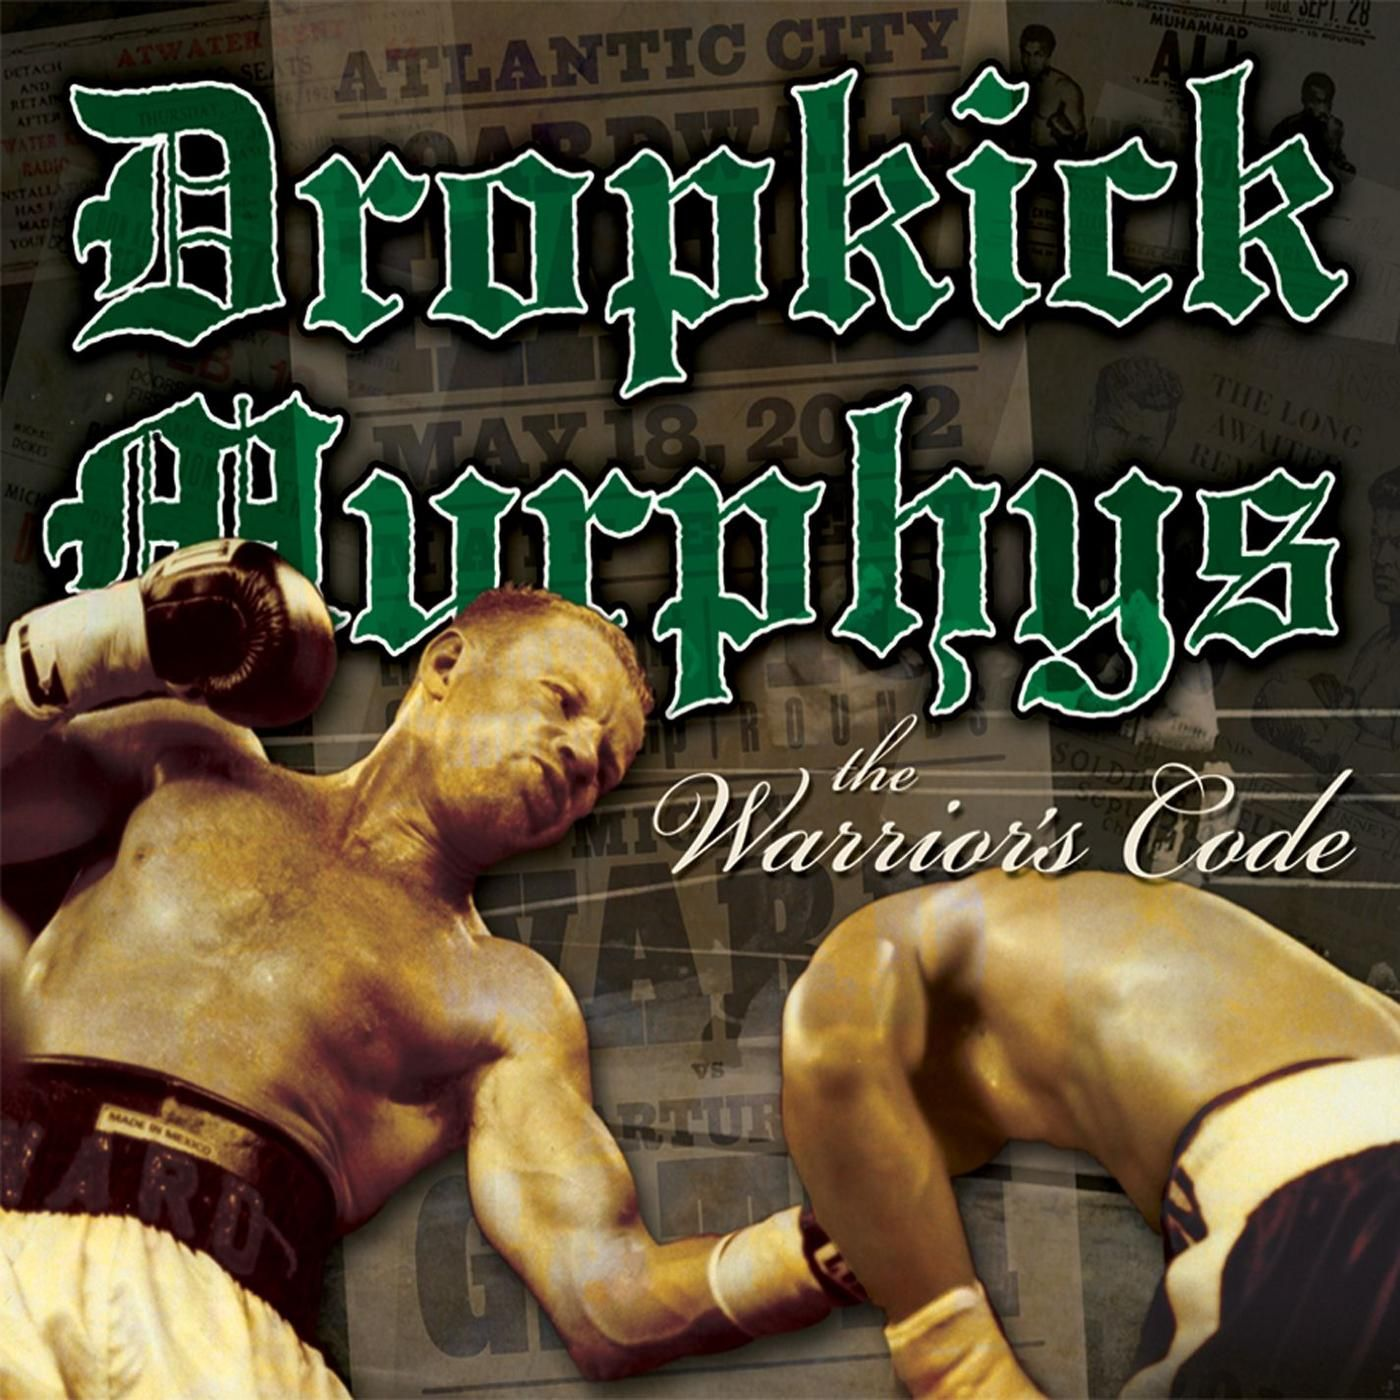 Dropkick Murphys - The Warrior's Code album cover